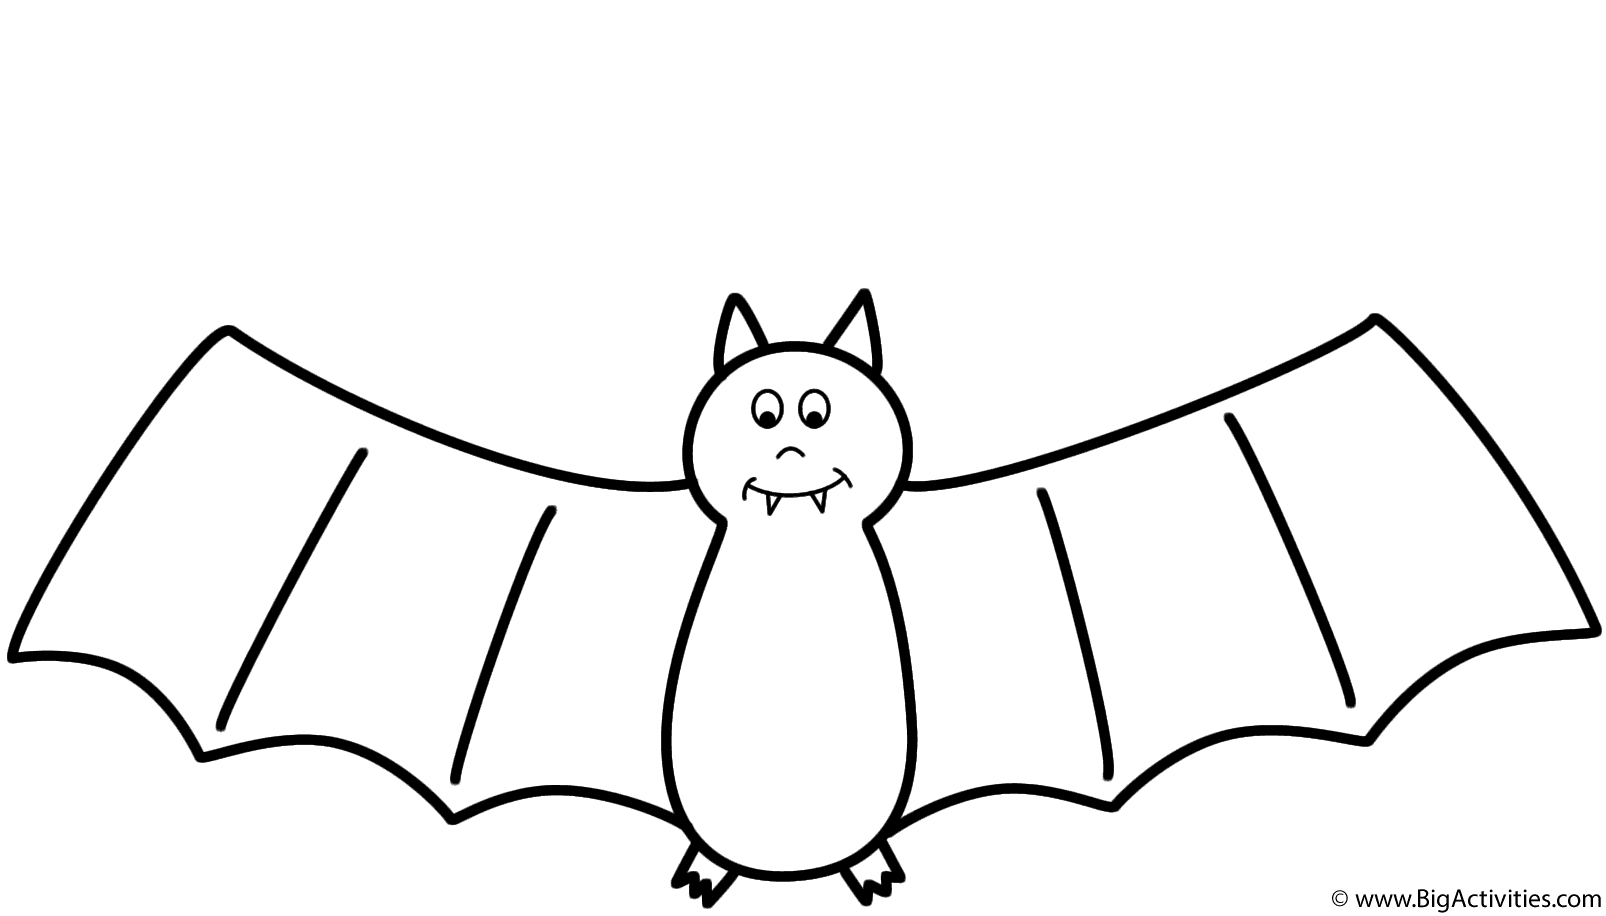 coloring picture bat free printable bat coloring pages for kids picture coloring bat